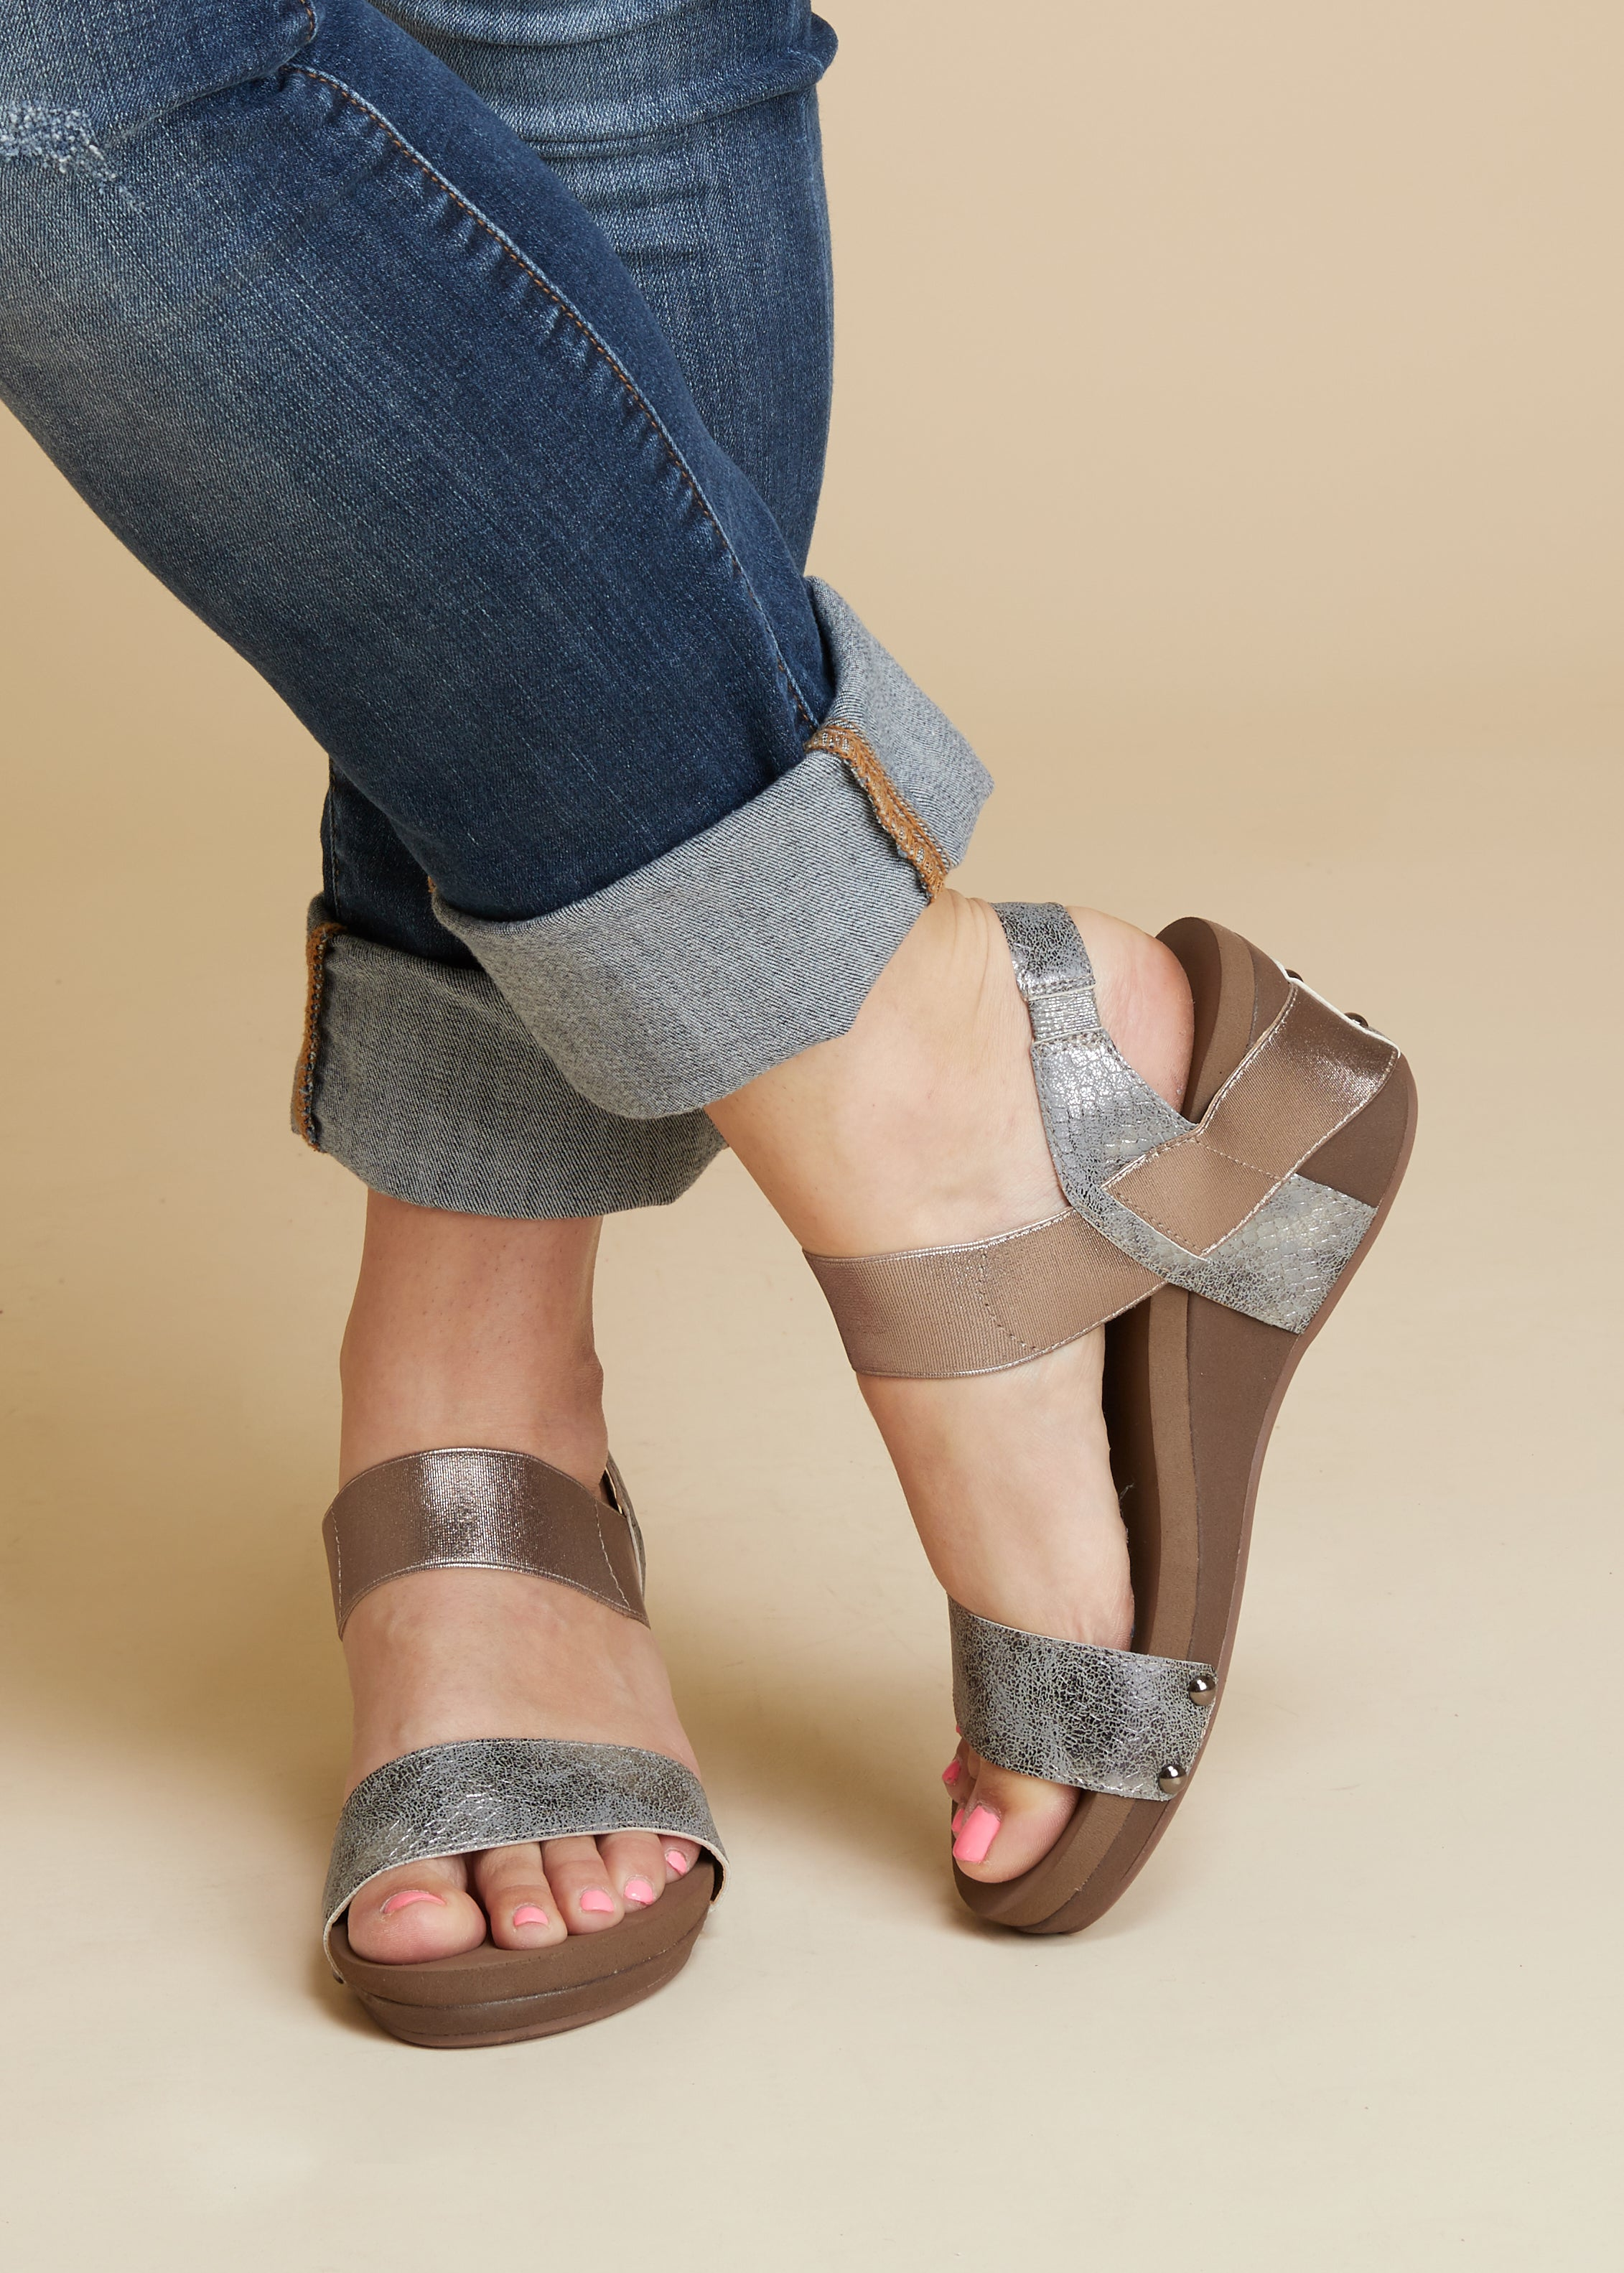 b342643c86d Bandit Wedge by Corkys-PEWTER-RESTOCK - Paisley Grace Boutique